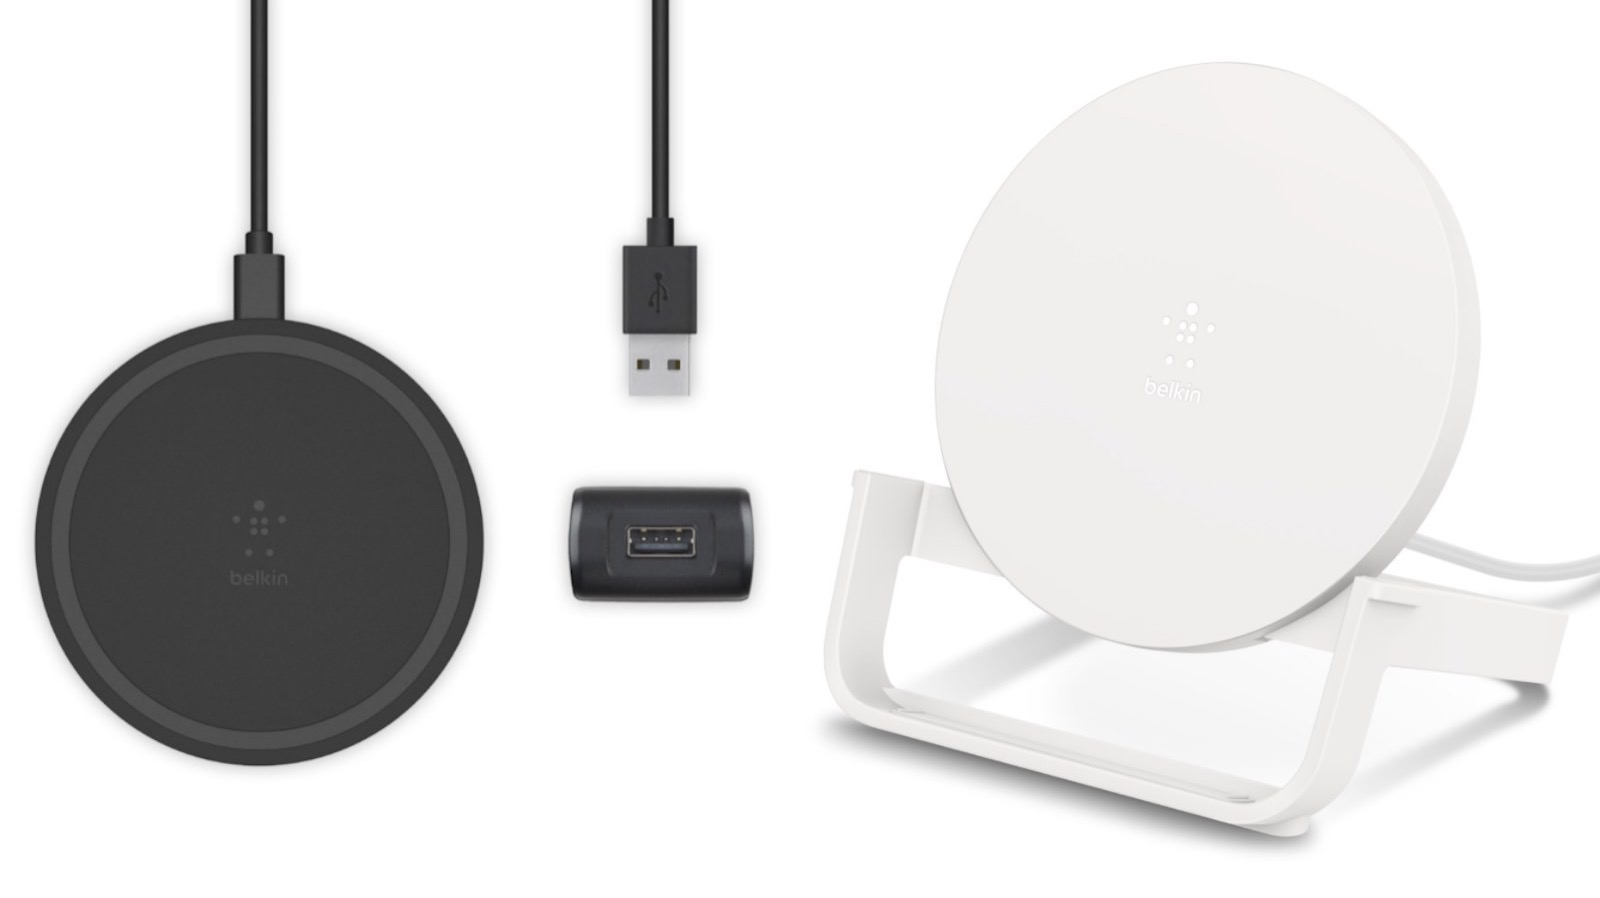 Wireless-Charger-from-Belkin.jpg